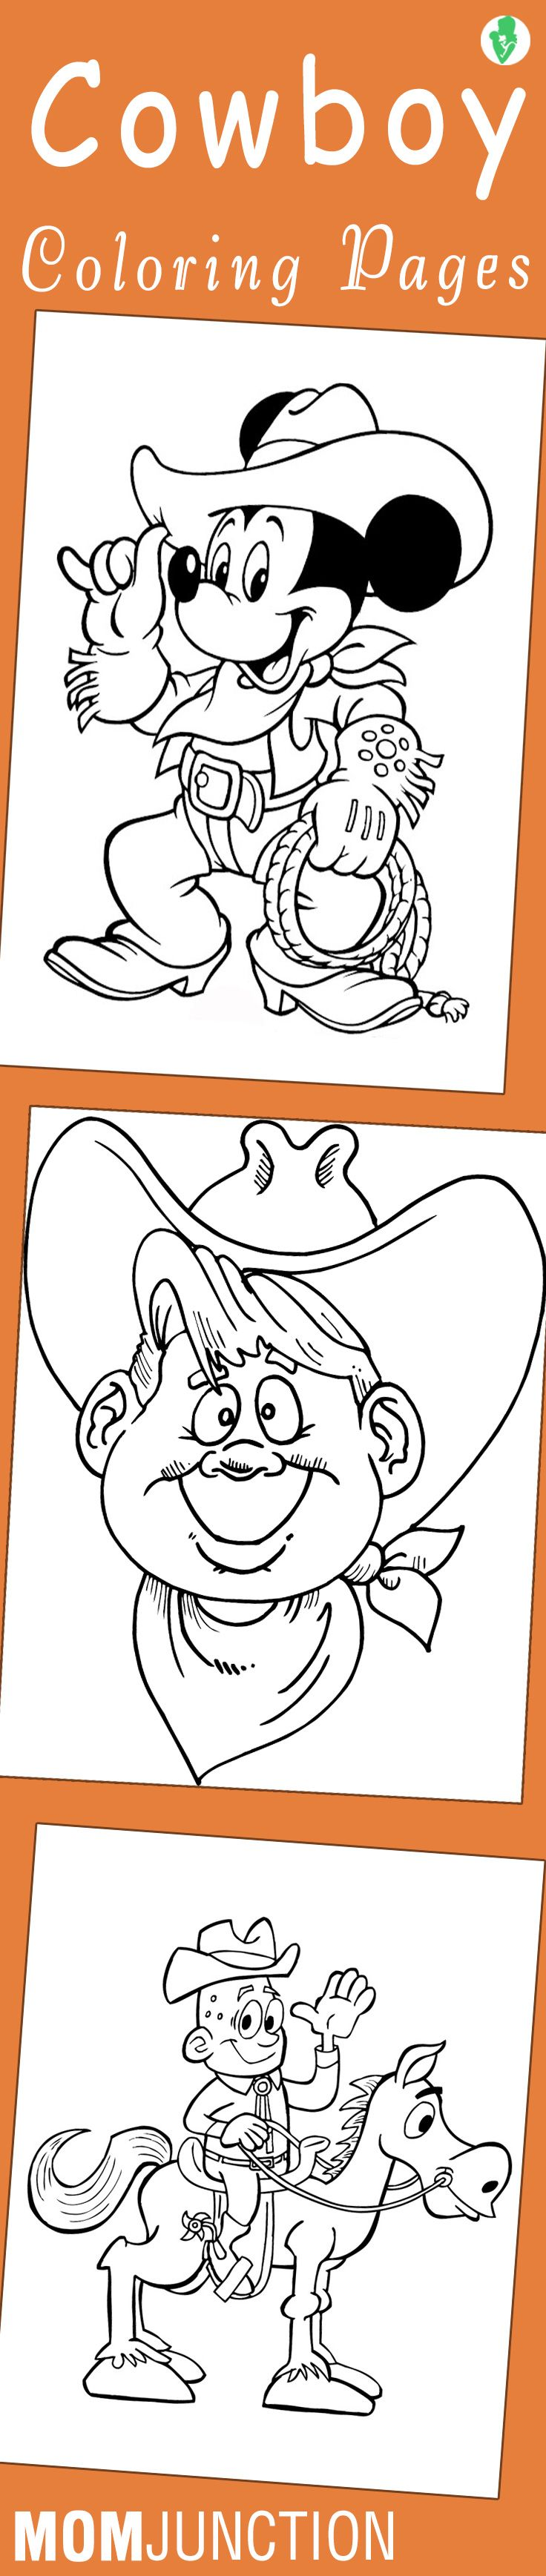 Co co coloring pages of a cowgirl - Top 25 Free Printabe Cowboy Coloring Pages Online